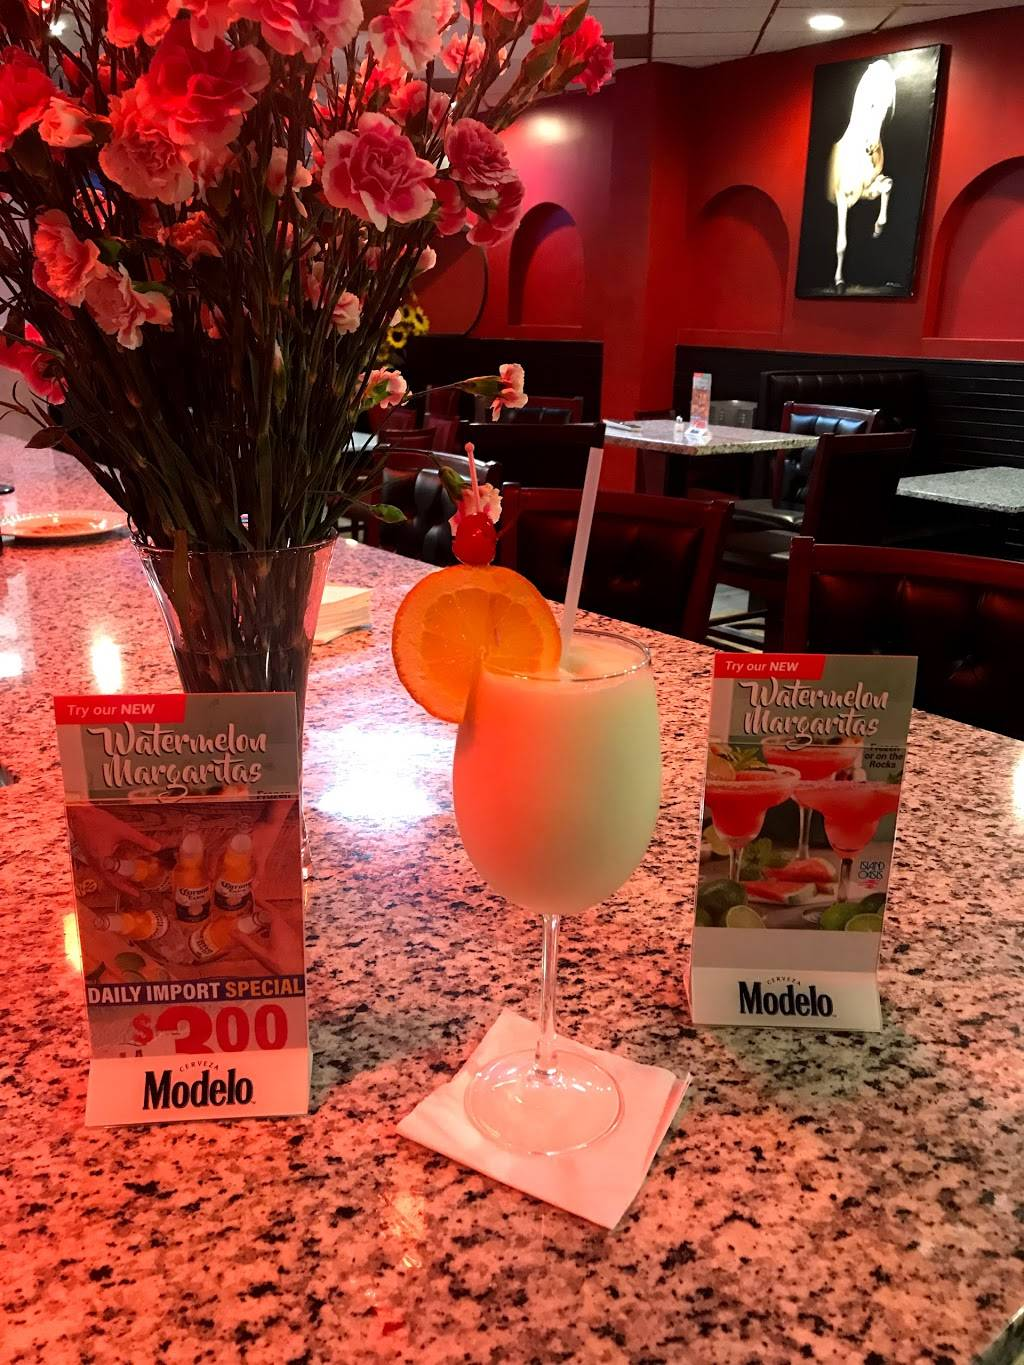 South Of The Border Restaurant & Bar   restaurant   1416 W Morse Ave, Chicago, IL 60626, USA   7738560427 OR +1 773-856-0427